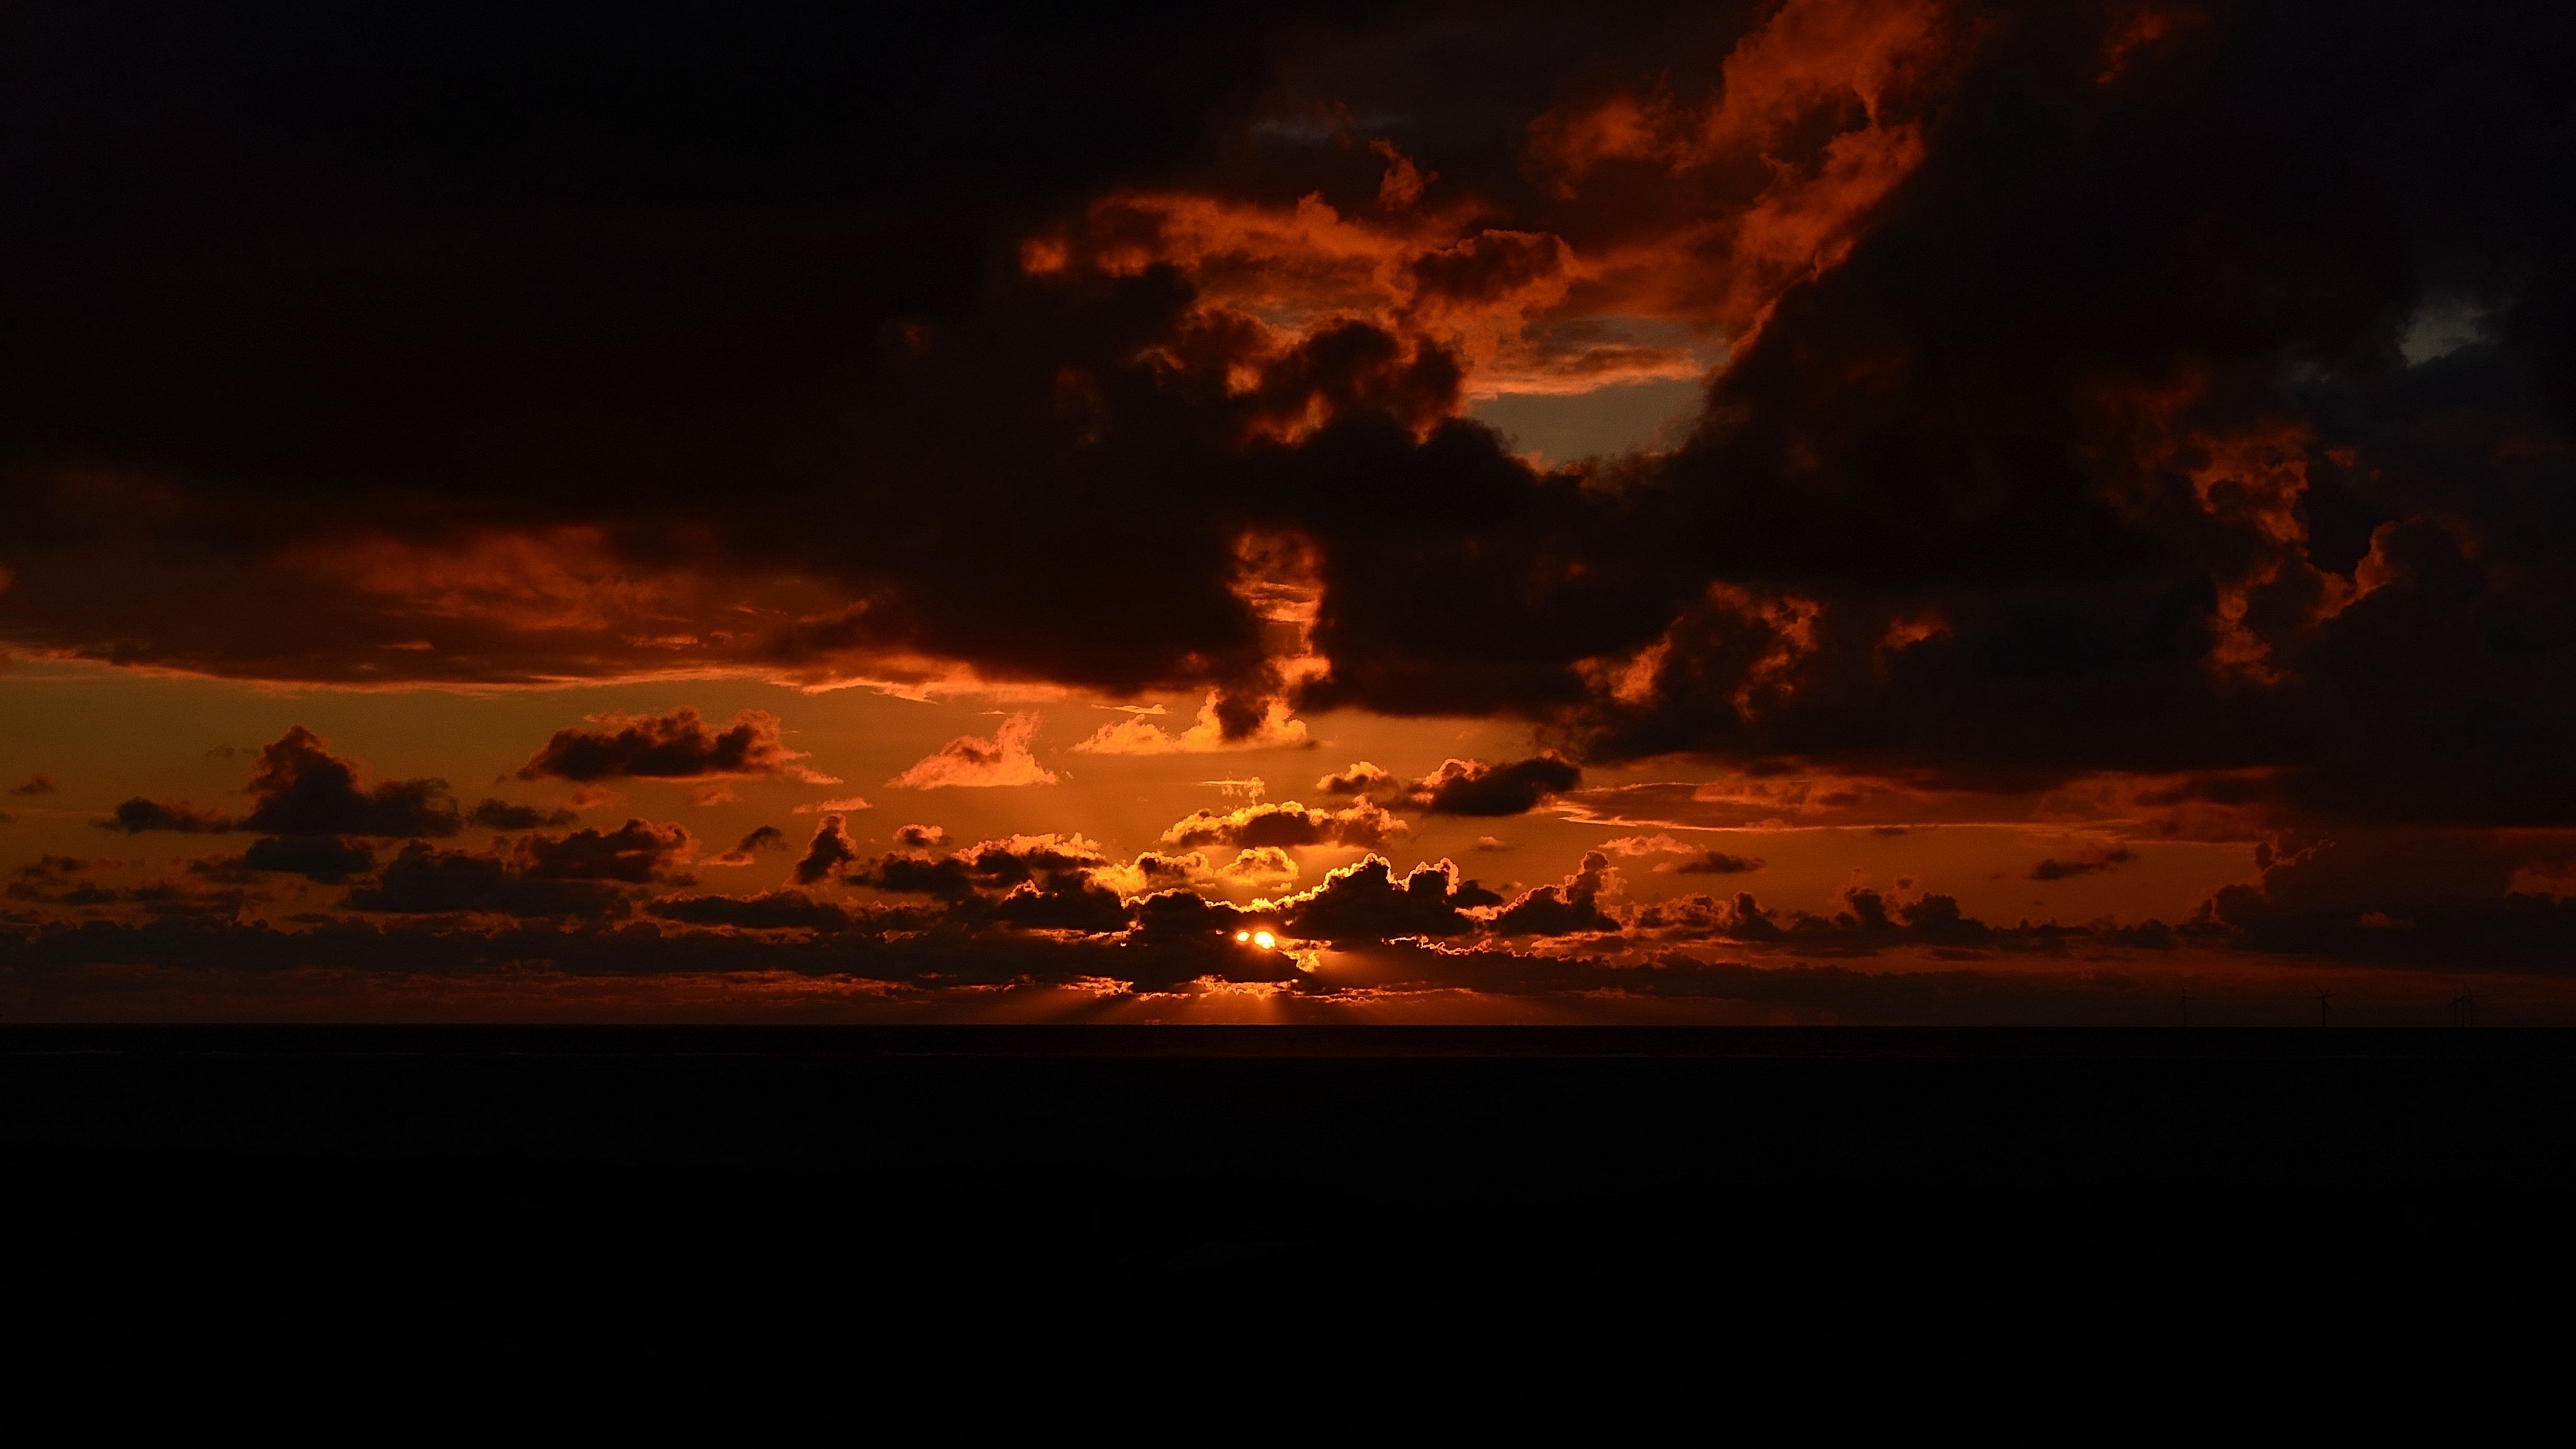 sunset sky clouds night 4k 1540574954 - sunset, sky, clouds, night 4k - sunset, Sky, Clouds